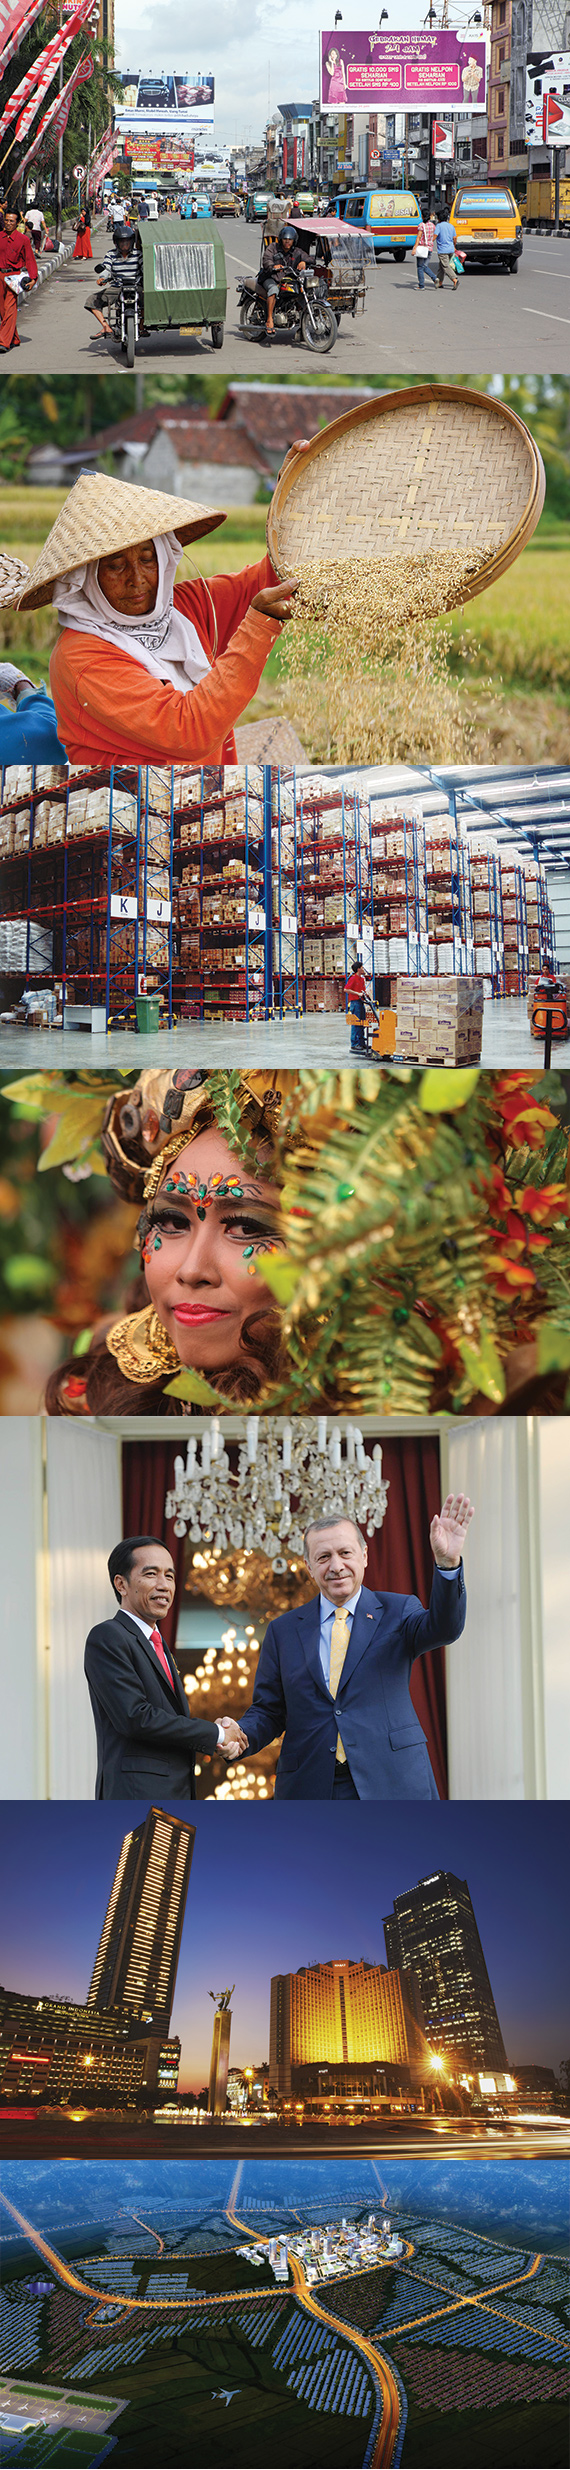 Indonesia-image-gallery